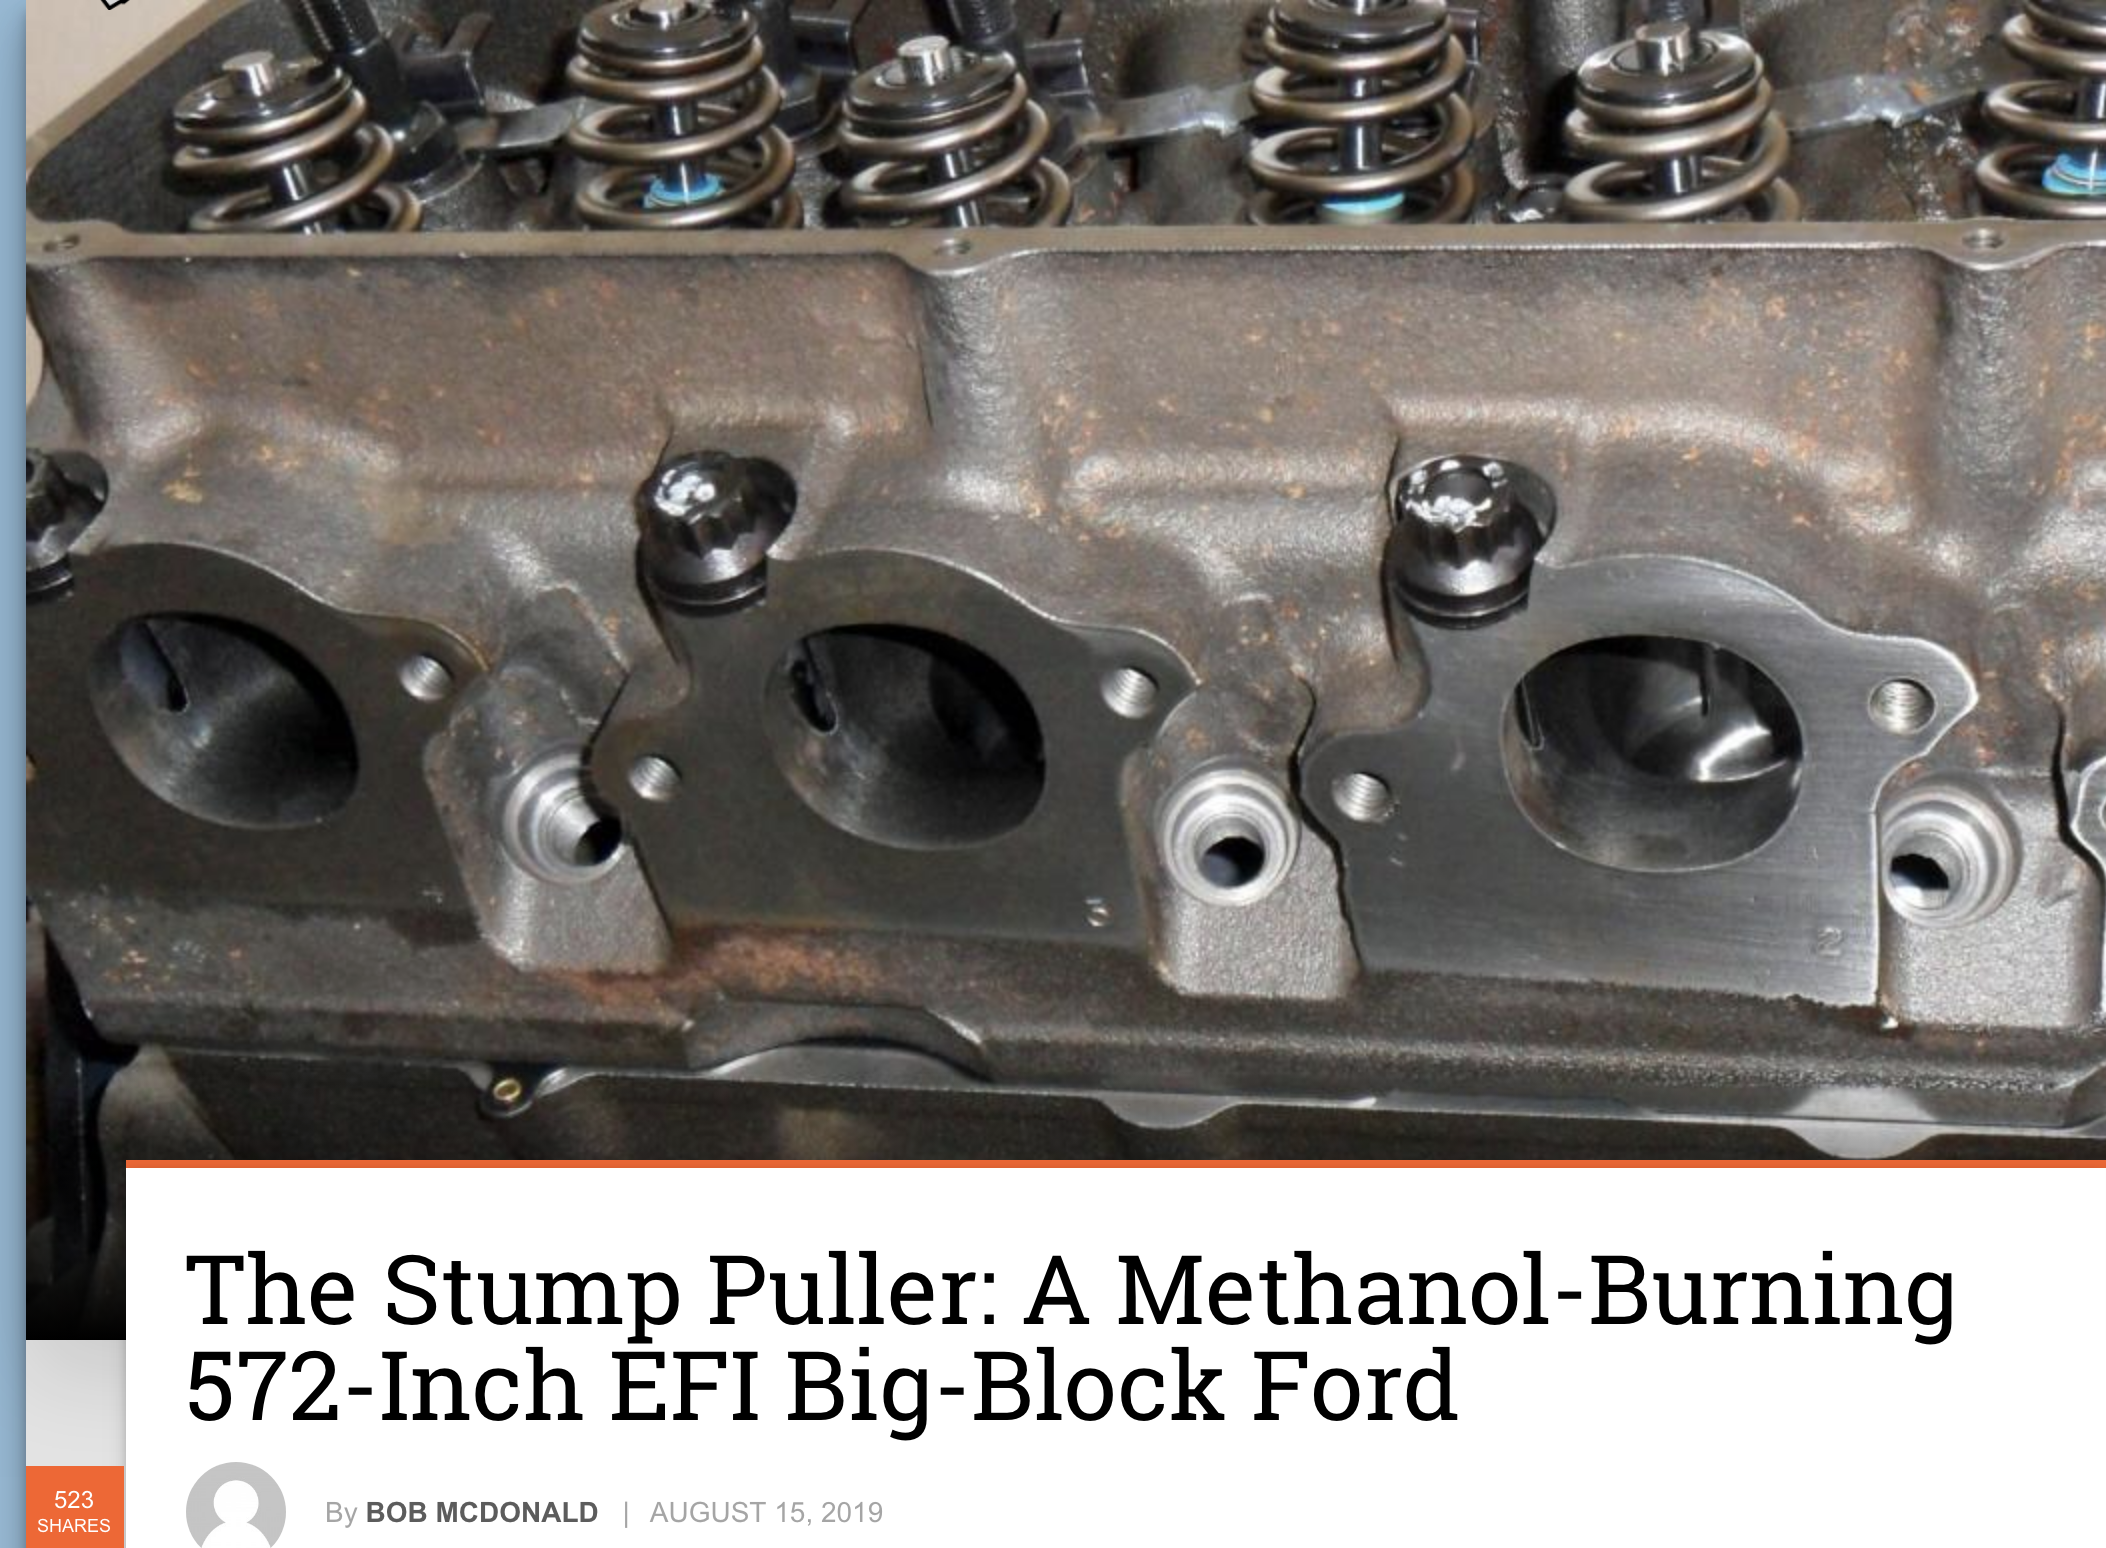 The Stump Puller: A Methanol-Burning 572-Inch EFI Big-Block Ford